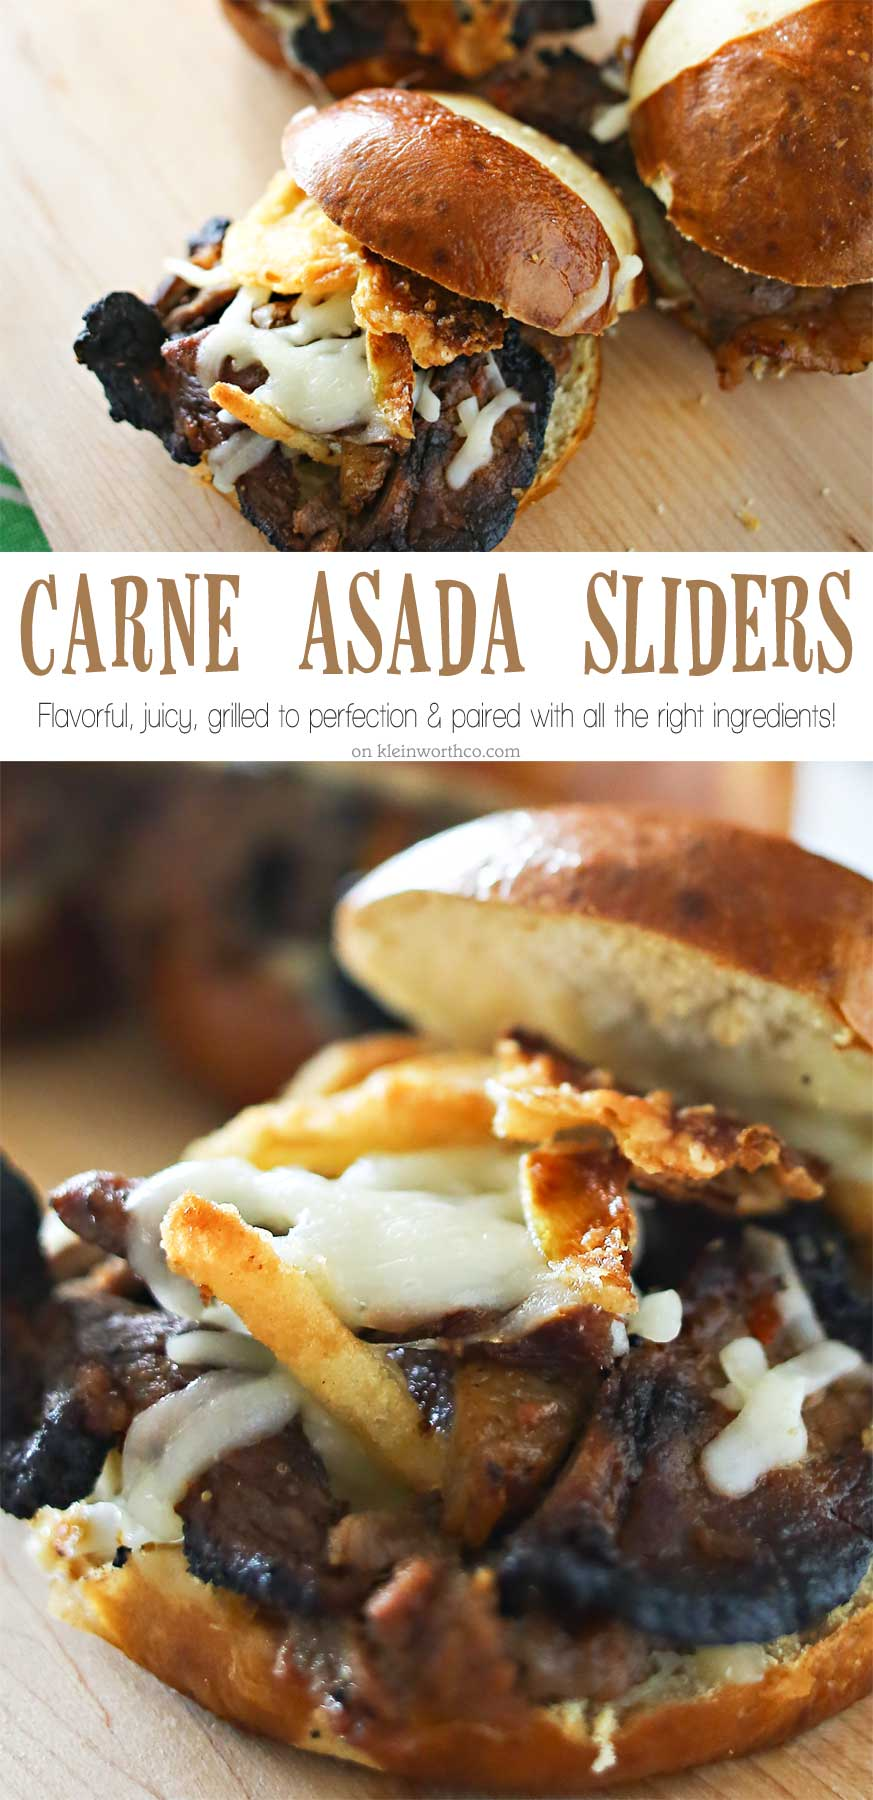 Carne Asada Sliders are a great easy family dinner idea that's perfect for warm weather holidays. The perfect grilled beef sandwich recipe for summer. Loaded with all the good stuff- everyone will RAVE!